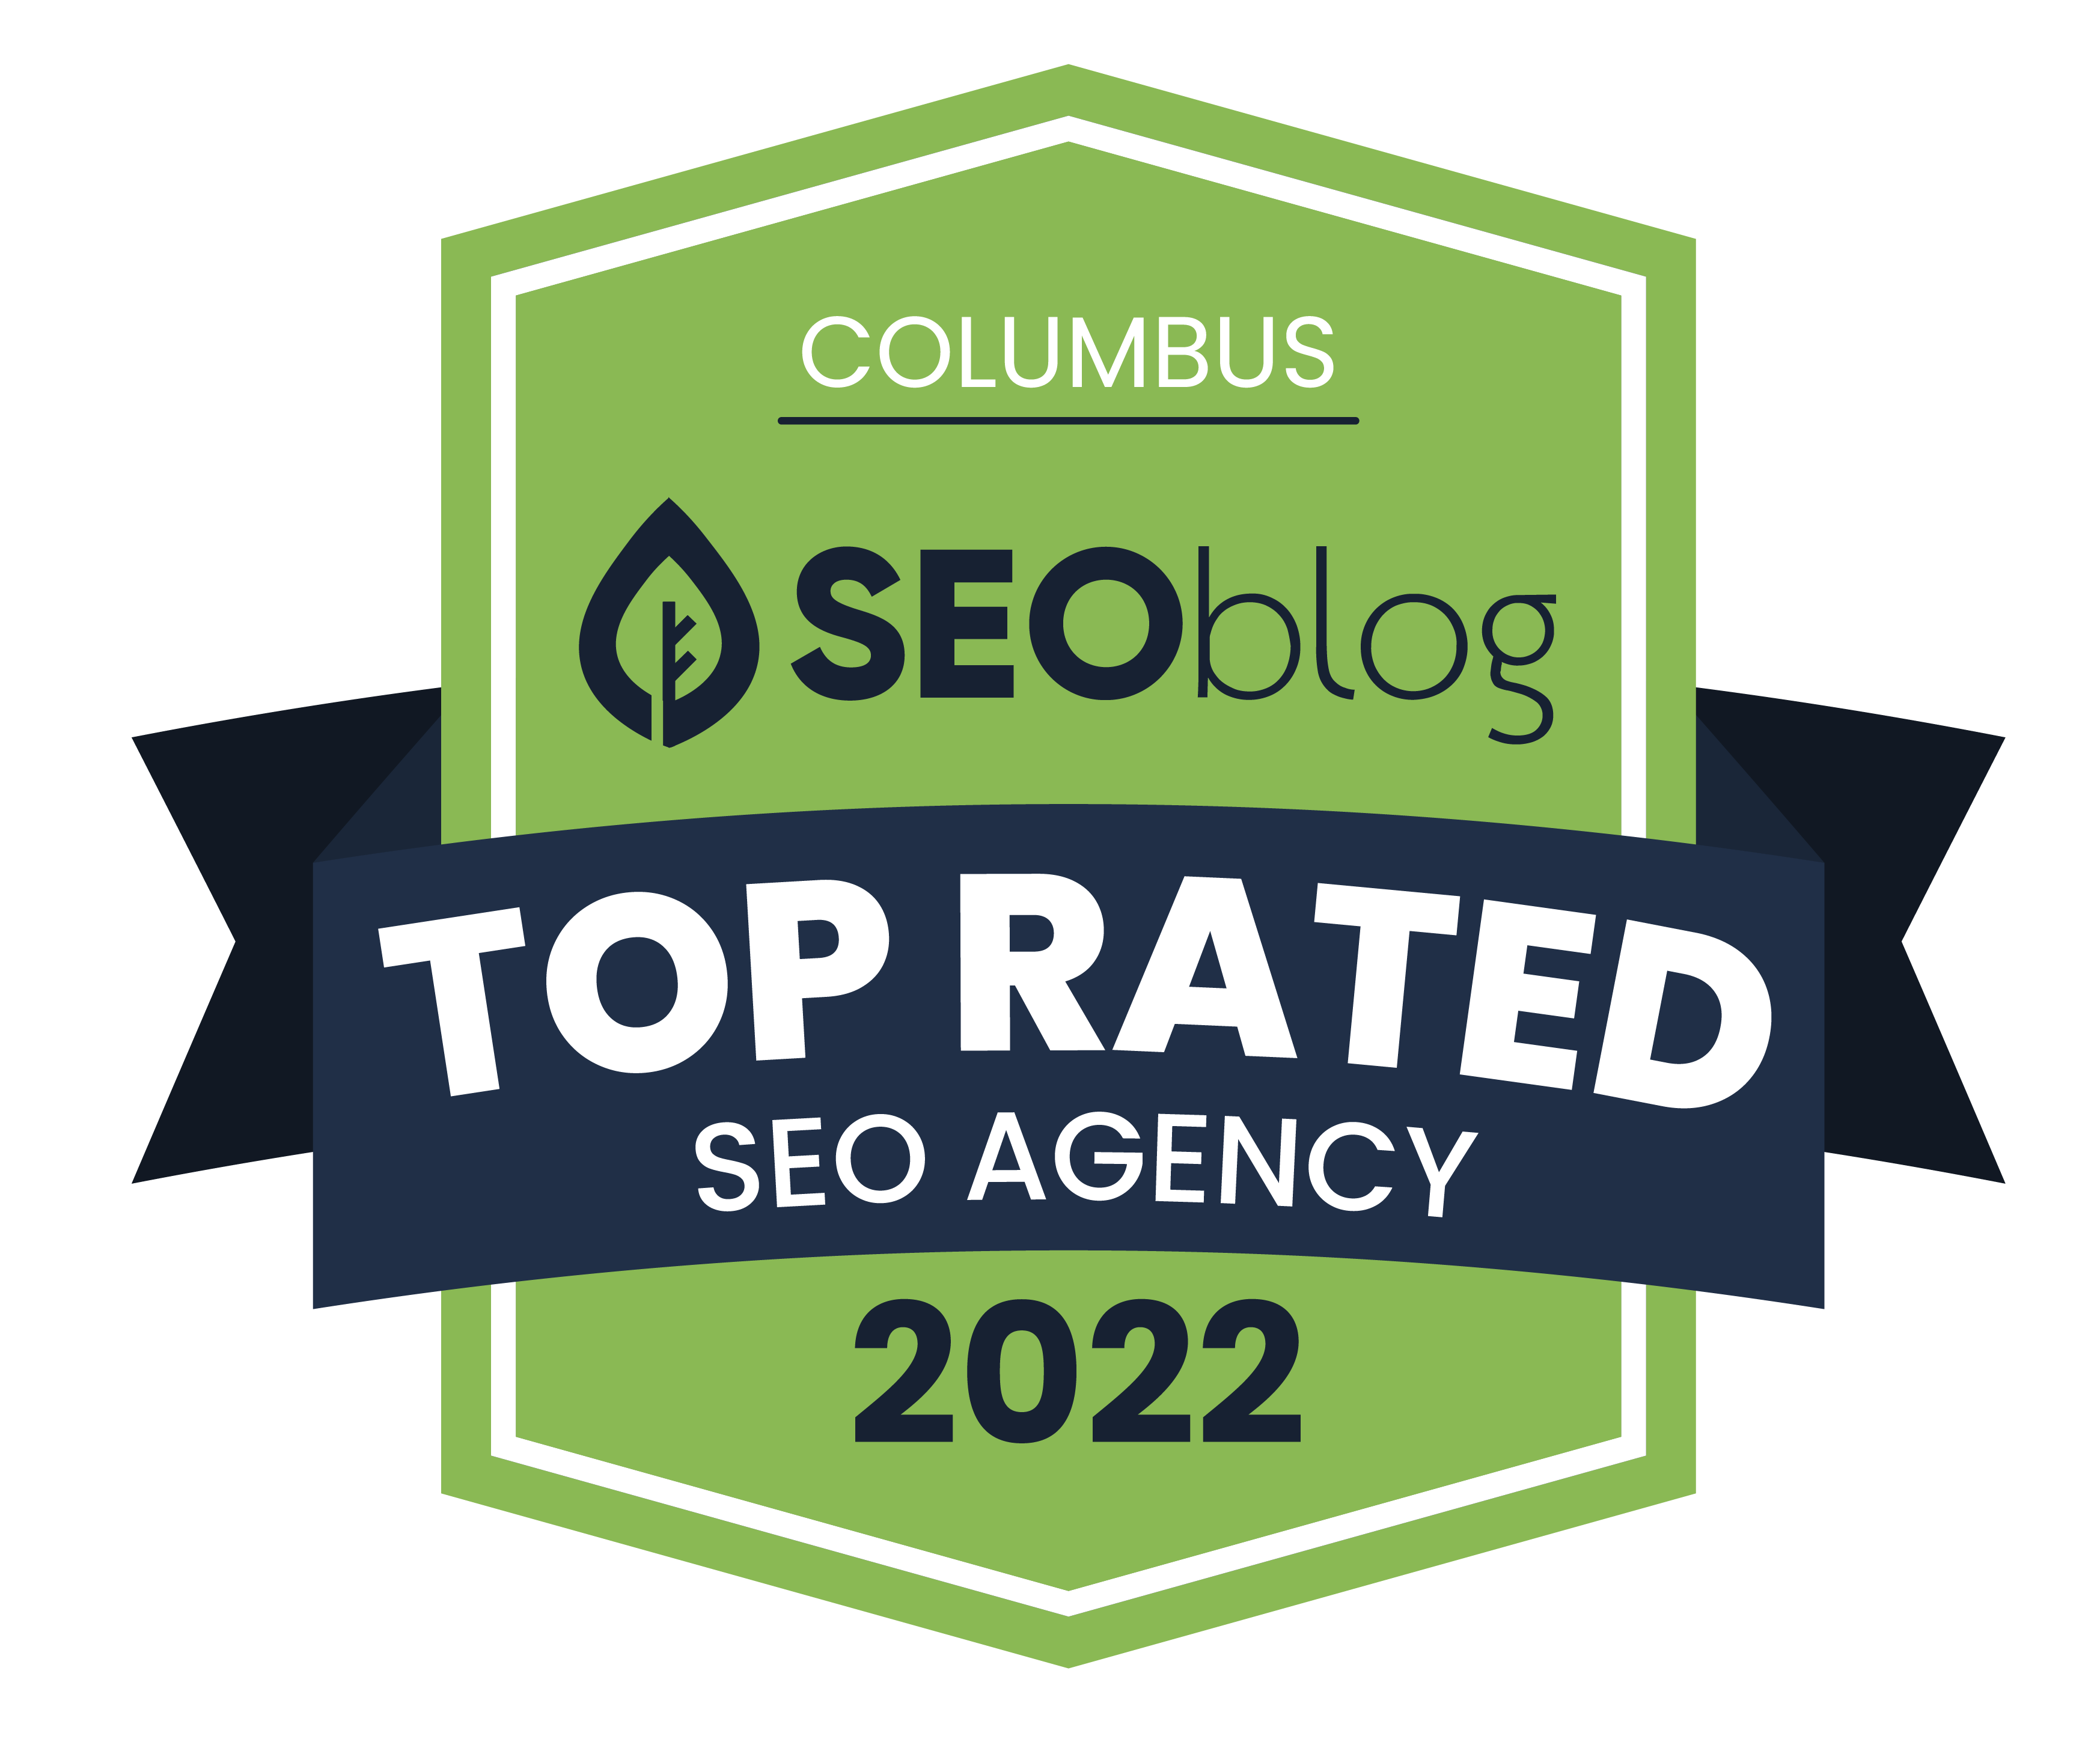 Columbus SEO Agency